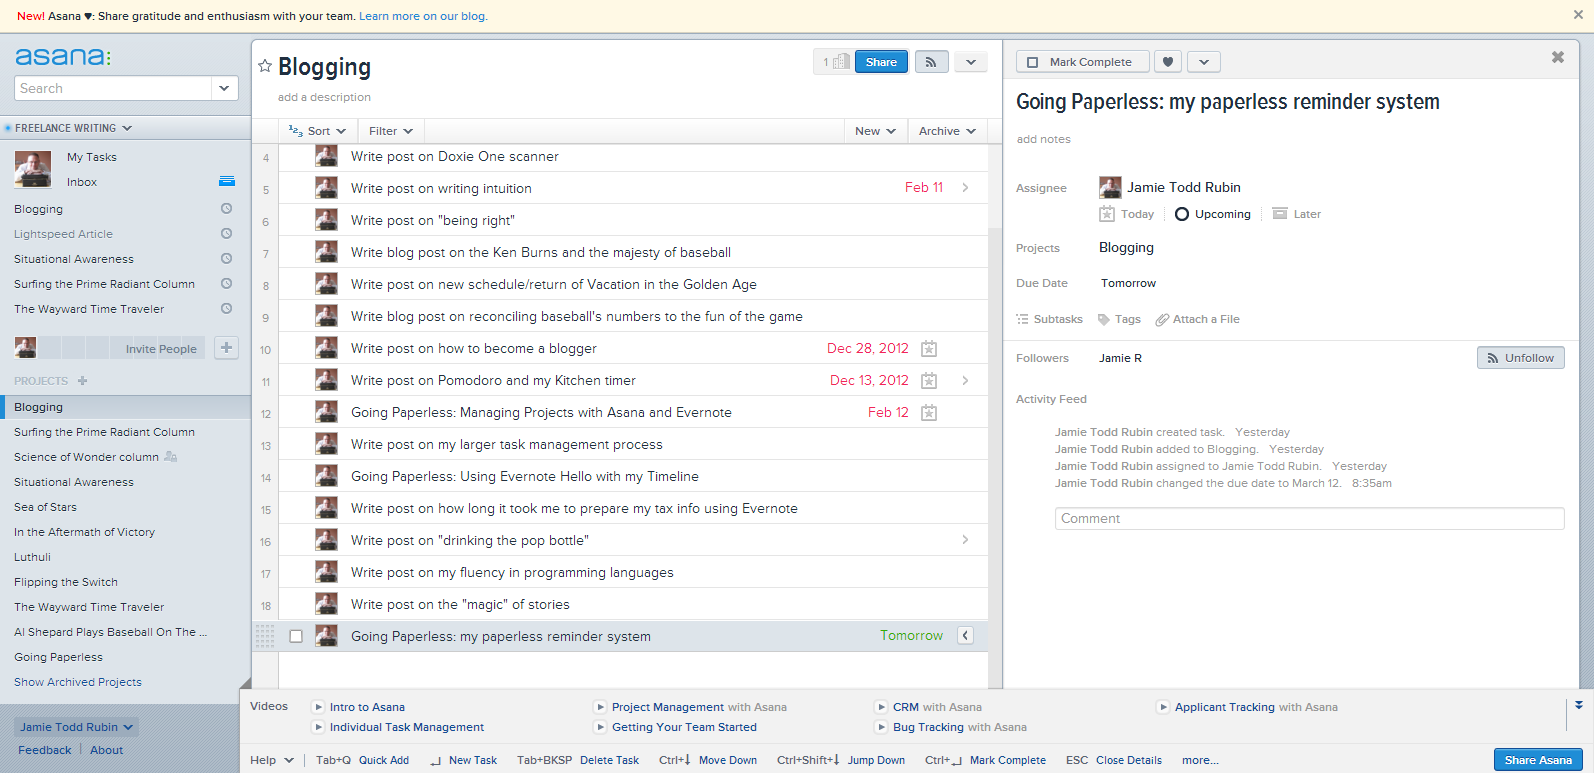 Overview of Asana interface